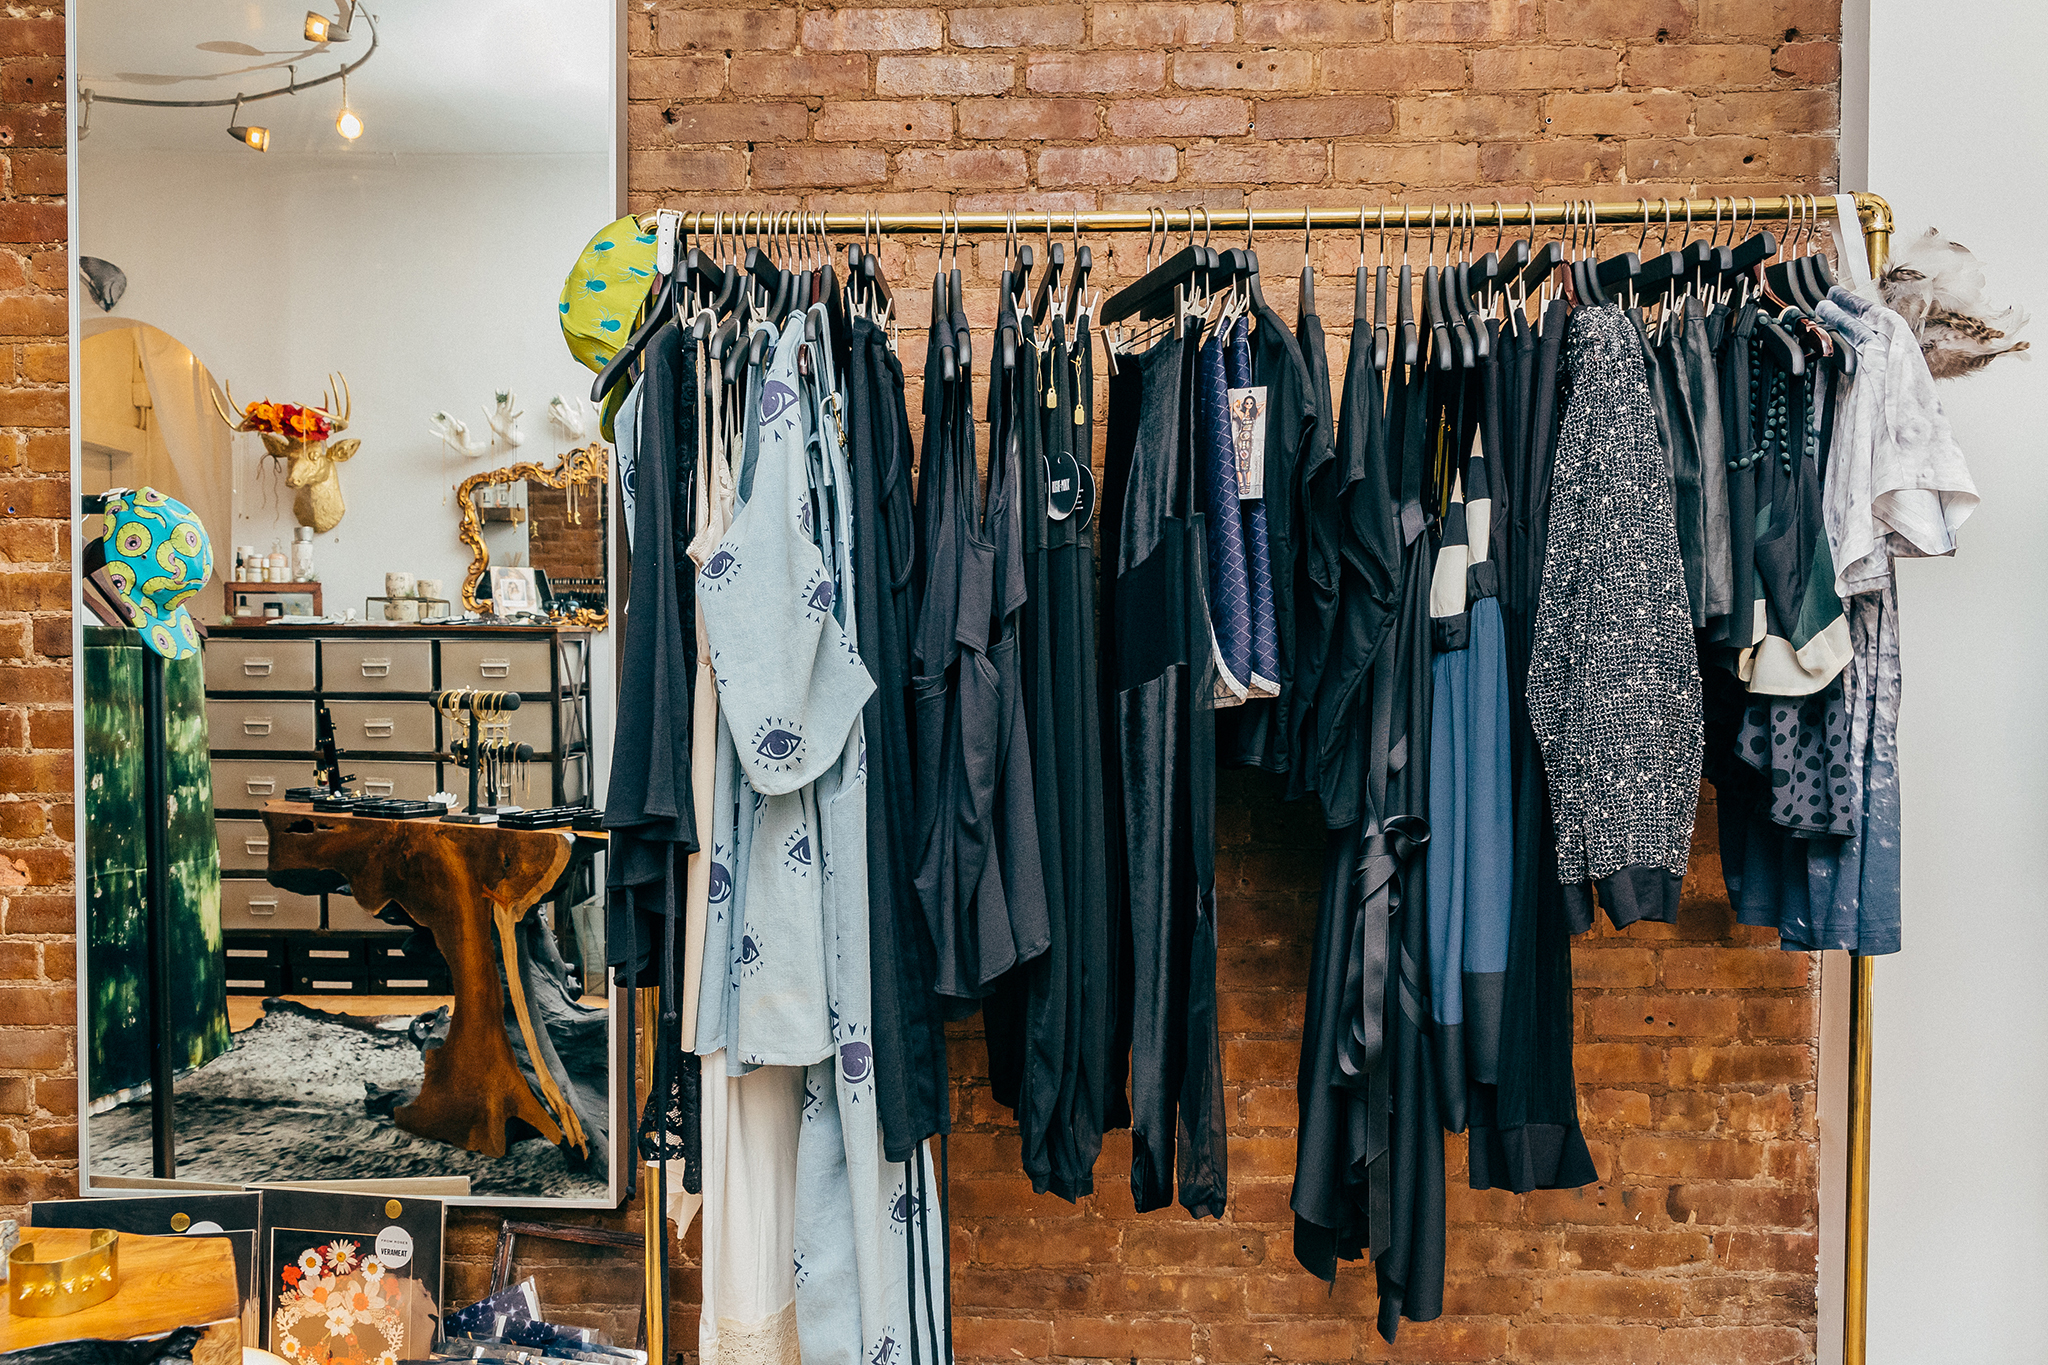 The 50 best clothing stores in NYC